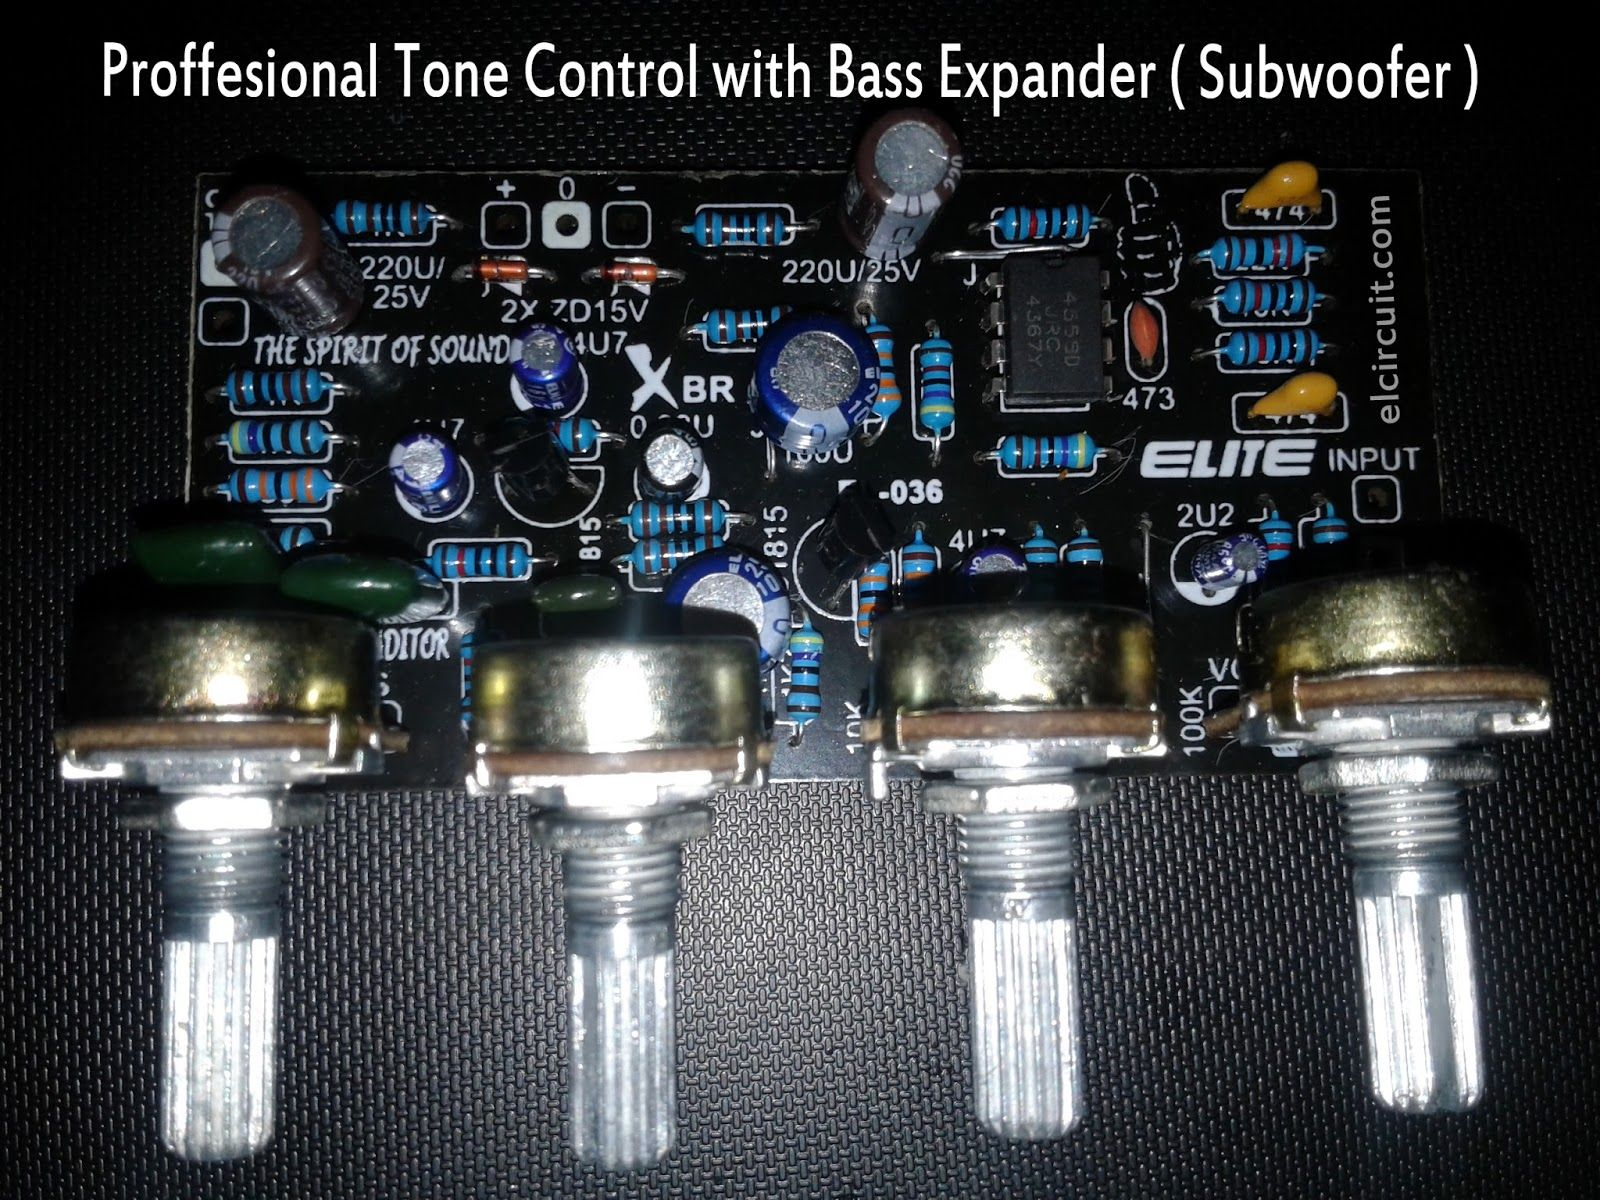 Professional Tone Control Mono Bass Expander And Subwoofer Mach Simple Amplifier With C945mje340 Tip3055 Kit